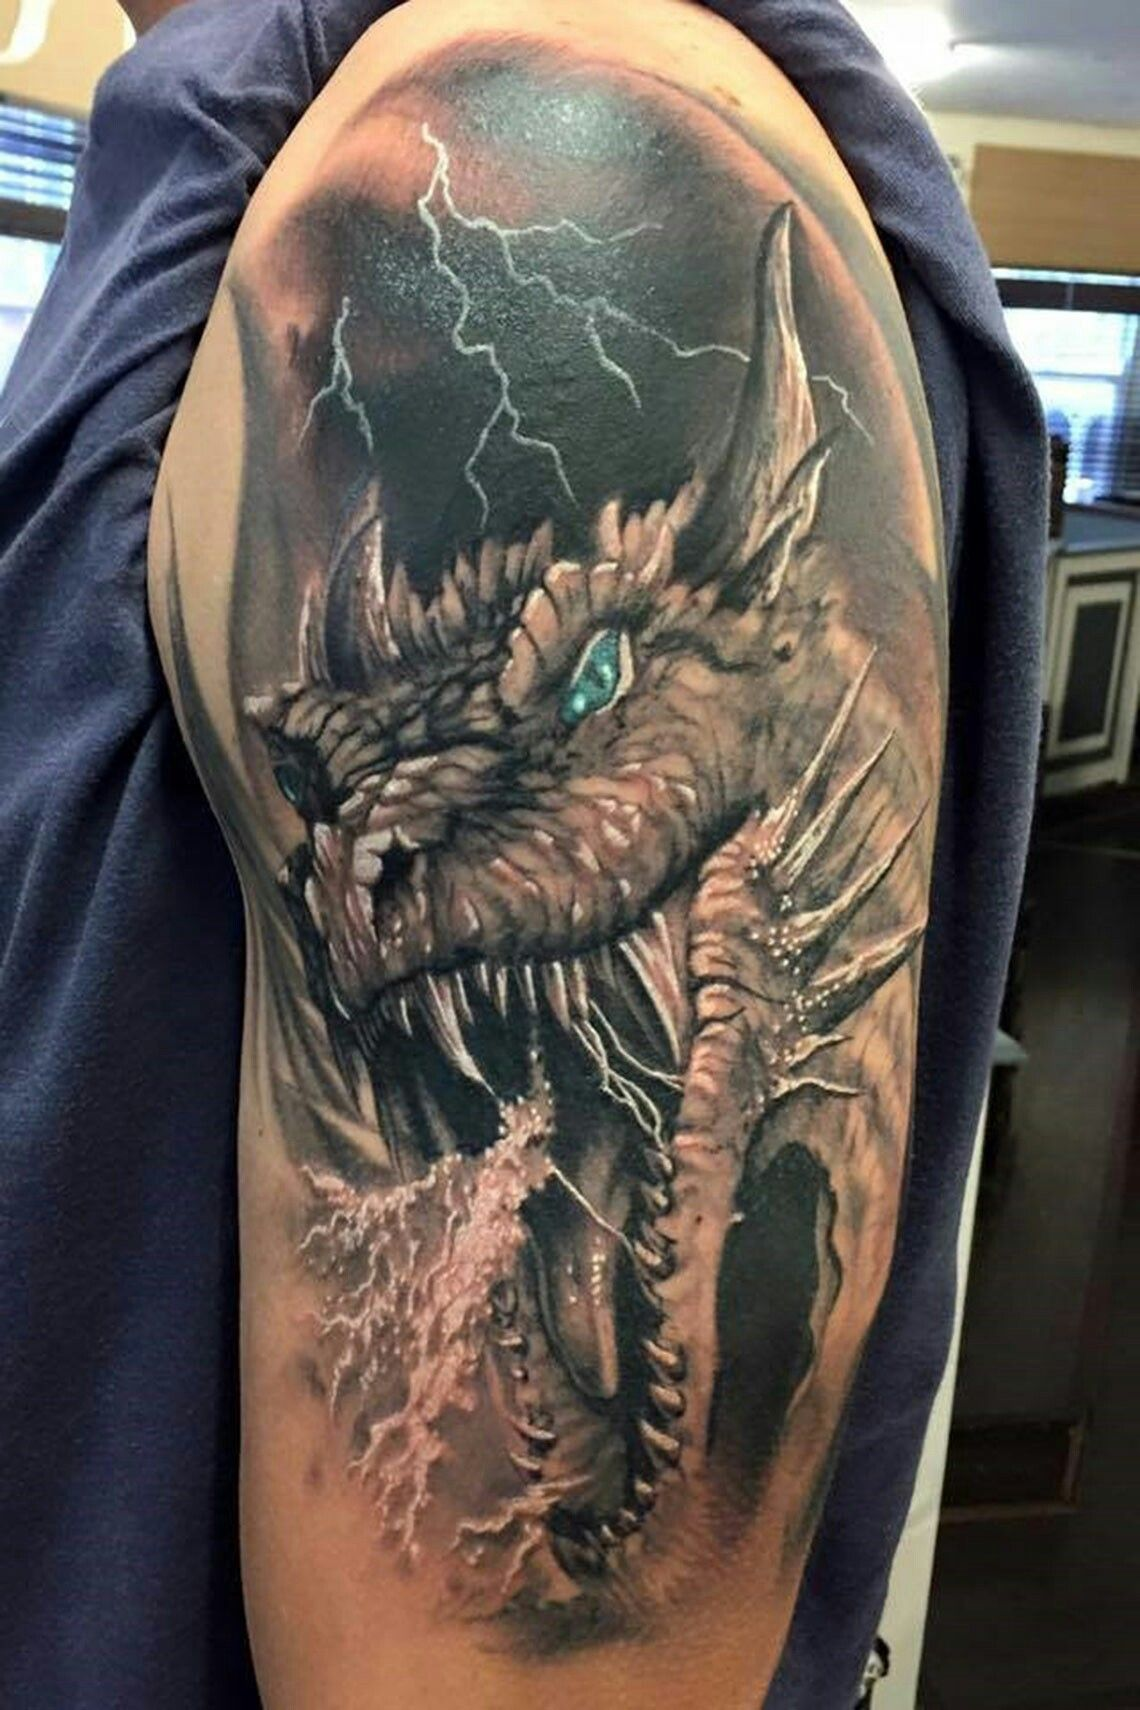 Pin by Antonio R. on Beautiful and sick tattoos Dragon